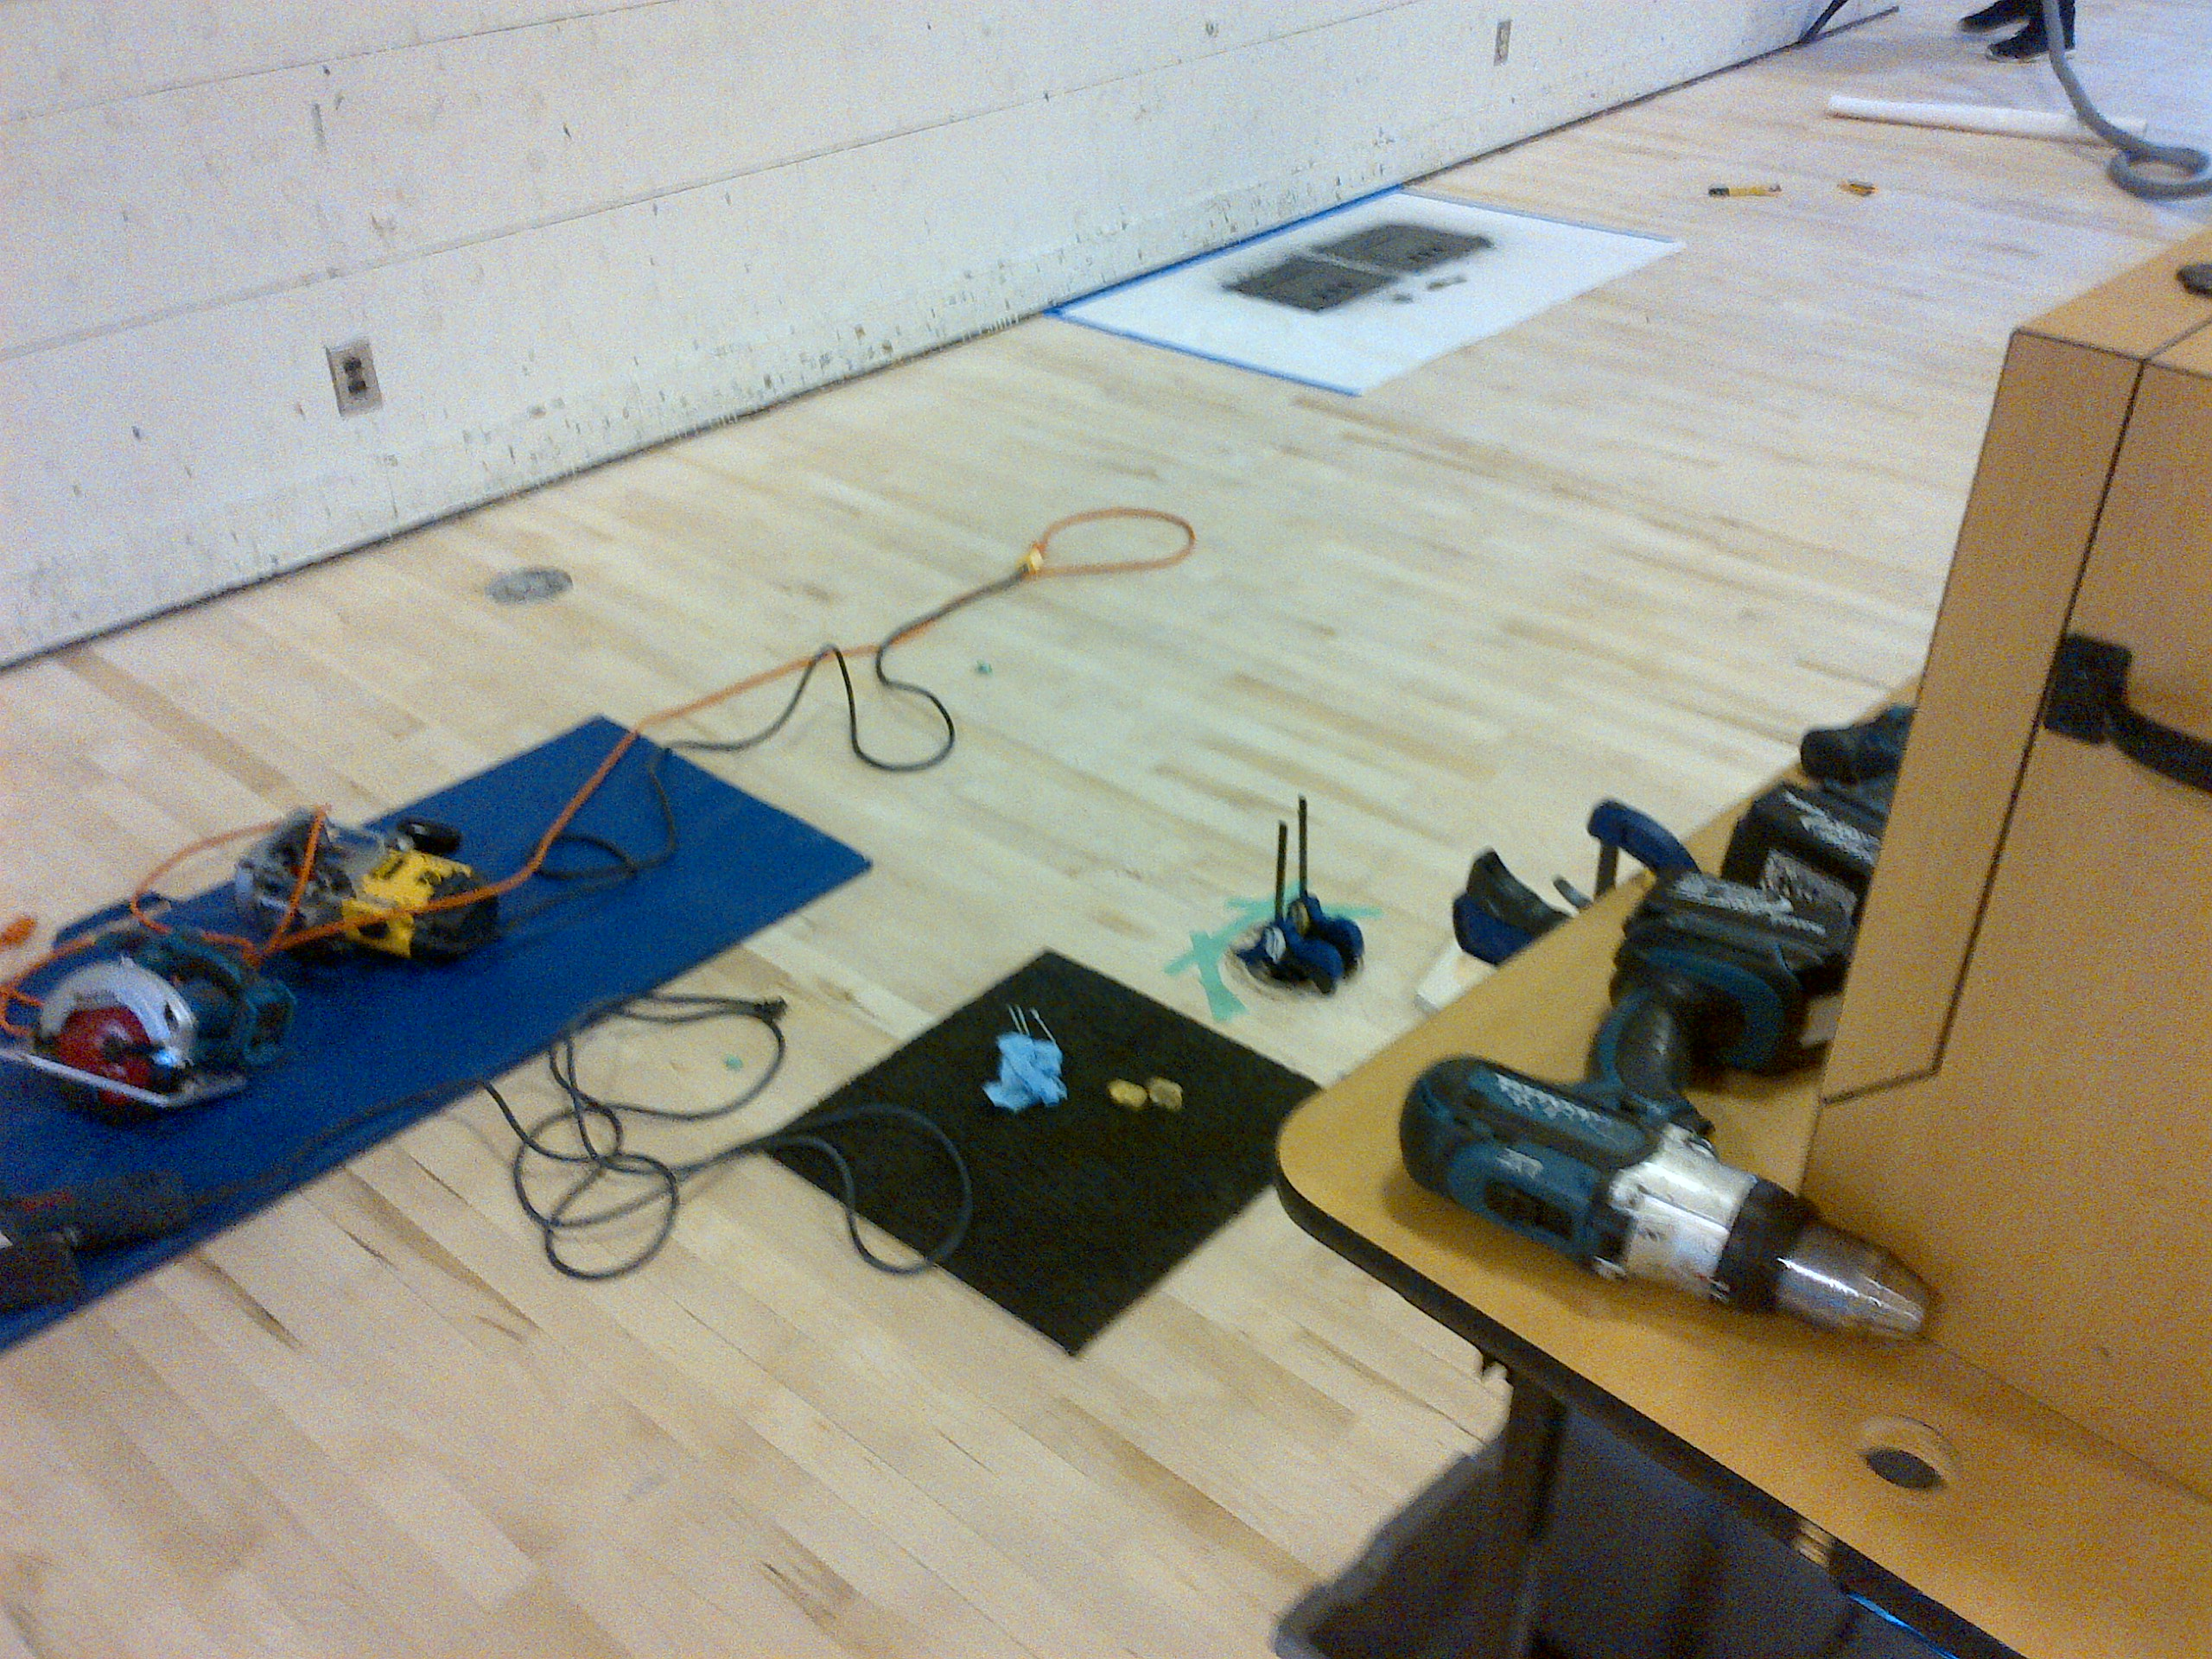 Ahf Hardwood Floor Repair Vancouver Bc Professsional Wooden Floor Resurfacing Contractor All Types Of Real Wood Soild Floor Repairs And Board Replacements Maple Oak Fir Walnut Cracked Split Or Broken Wooden Boards